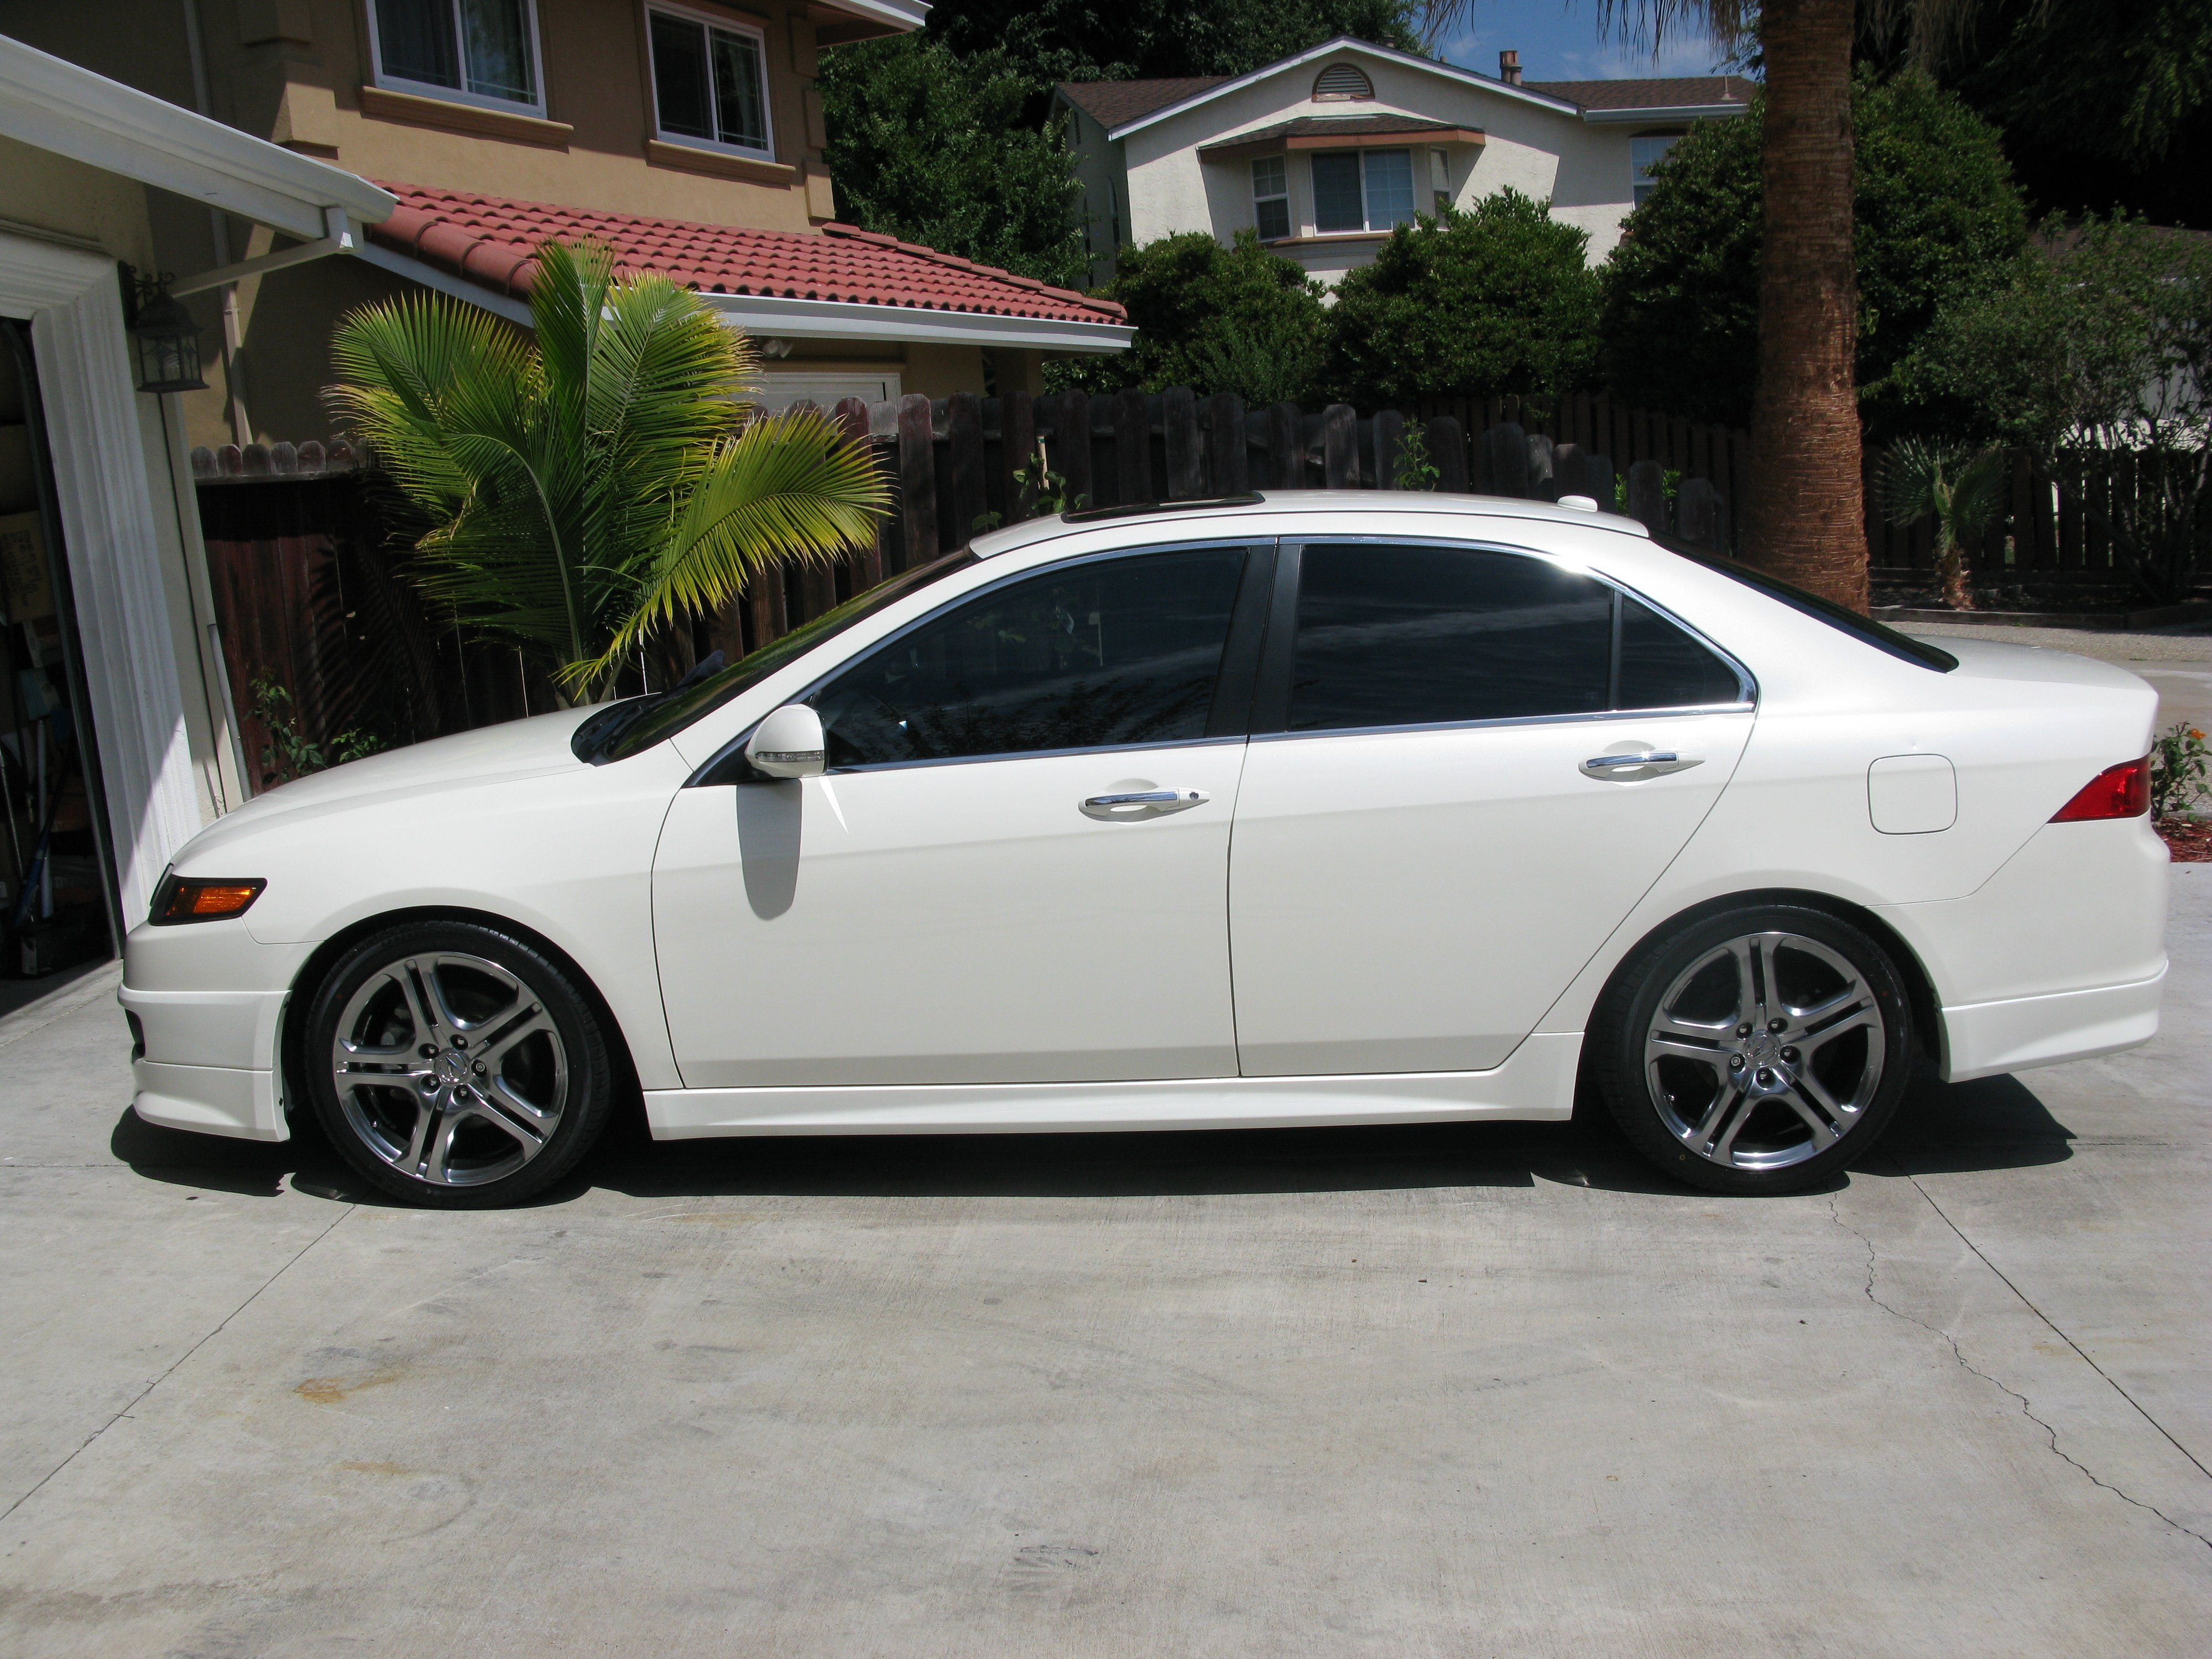 http://auto-database.com/image/acura-tsx-2007-pictures-316226.jpg